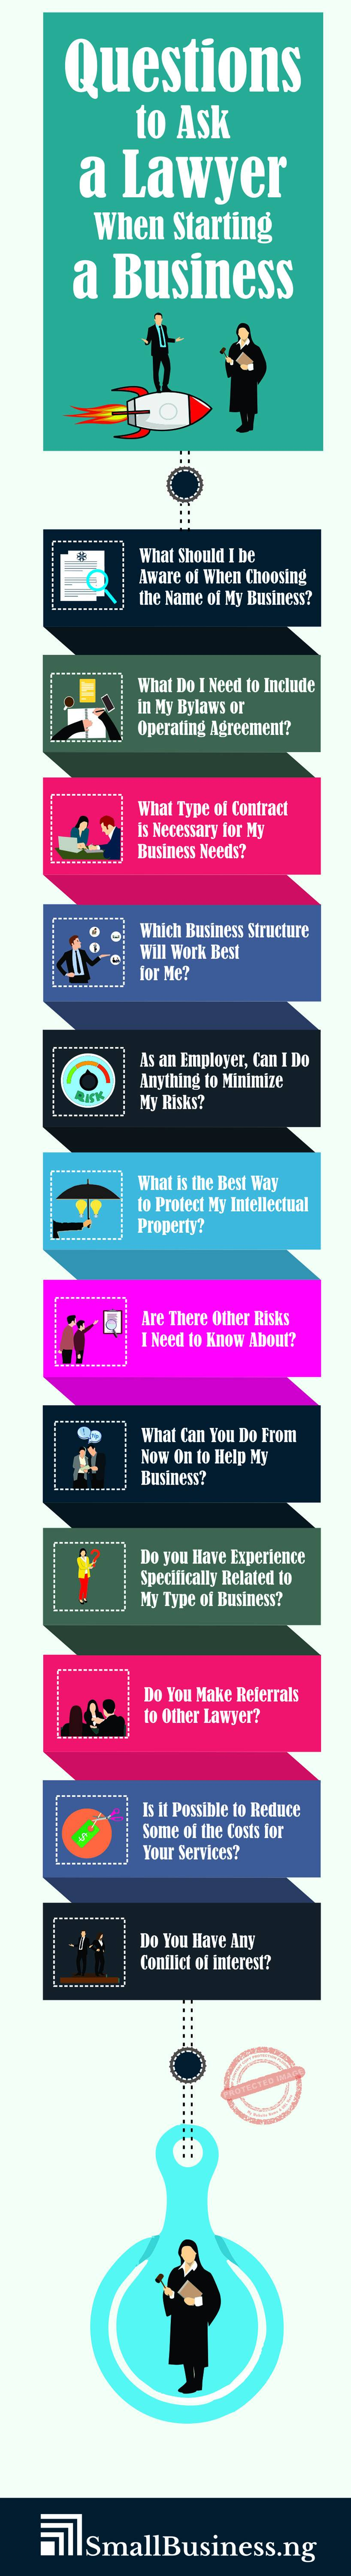 Questions to ask a lawyer when starting a business infographic